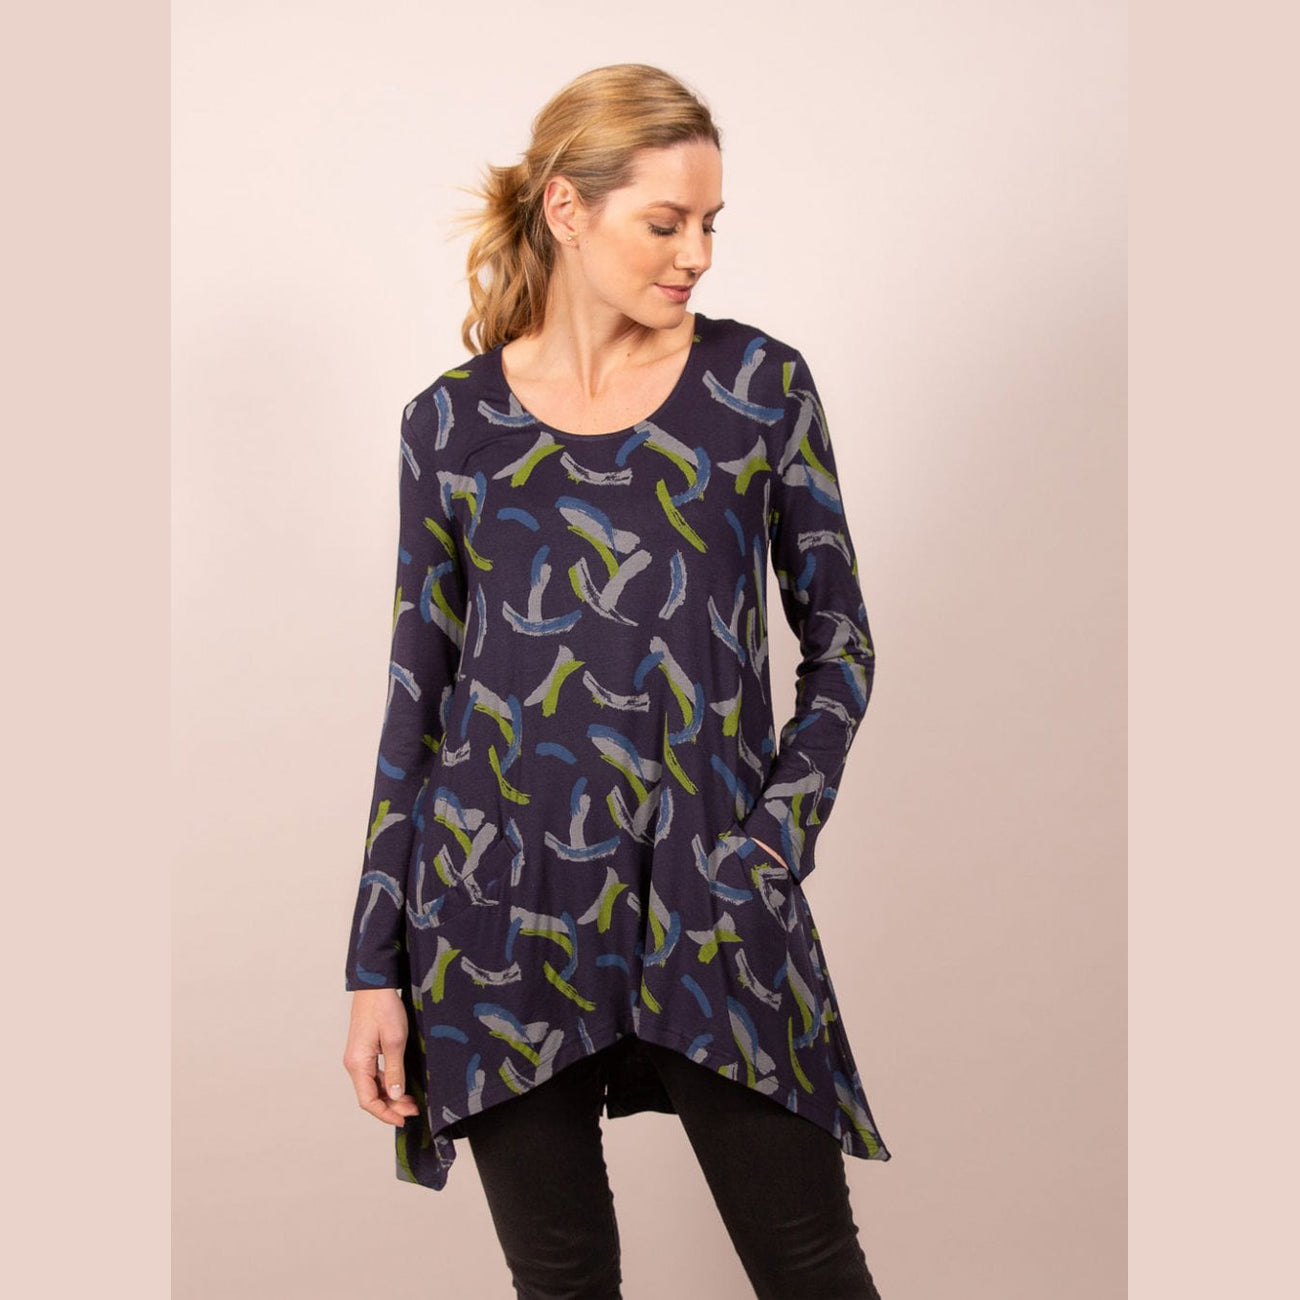 Brushstroke Print Tunic | BSK6000 | Apple